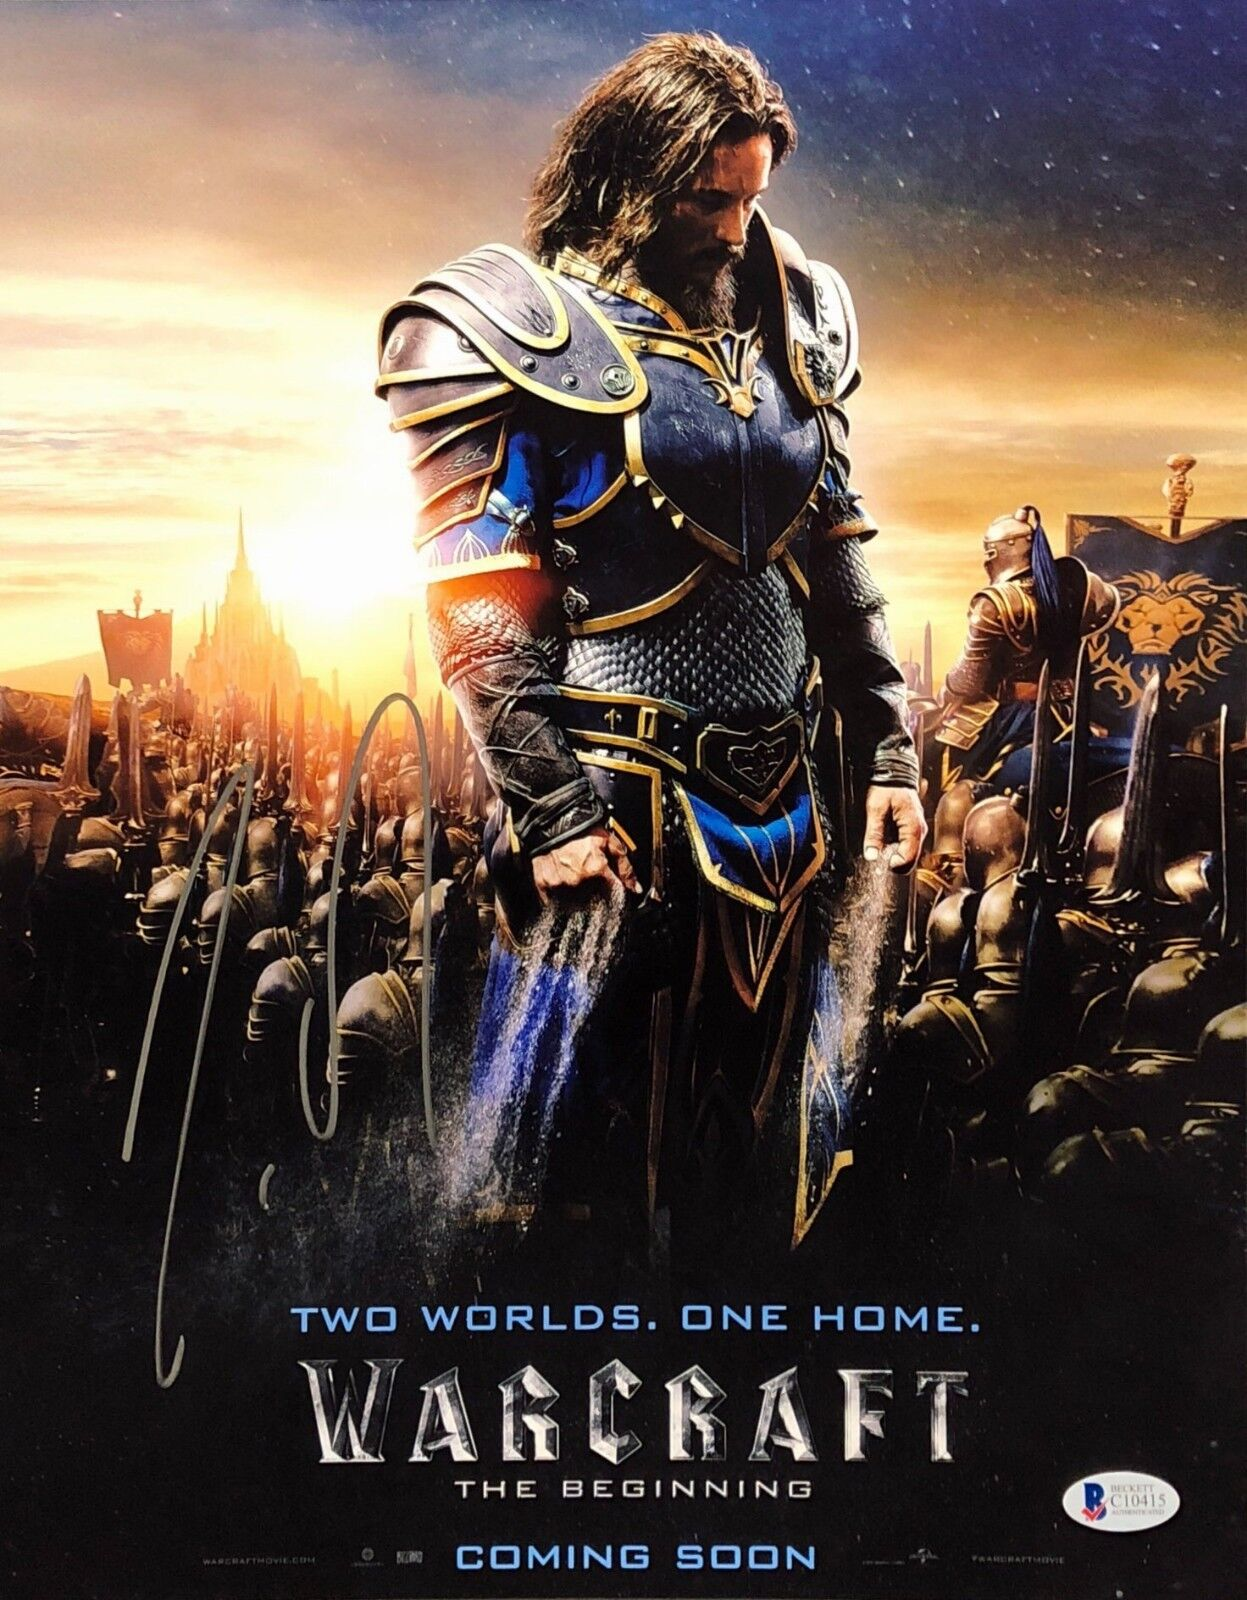 Travis Fimmel Signed Warcraft 'Two Worlds. One Home' 11x14 Photo BAS C10415